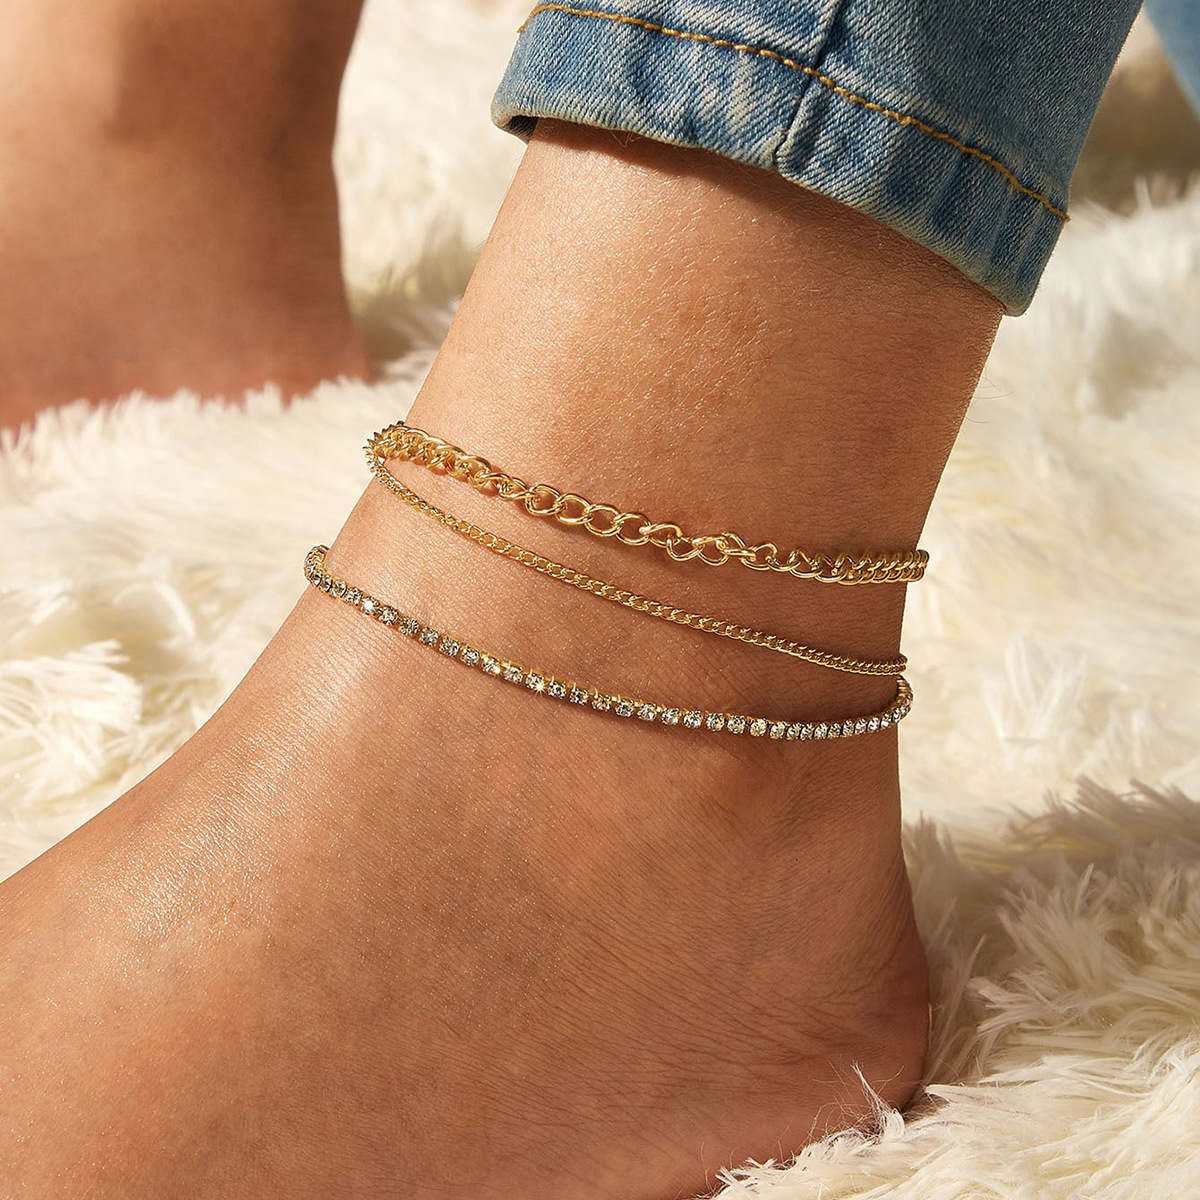 European and American New Full-diamond Multilayer Anklet Set Three-piece Set Creative Simple Foot Ornaments Anklets for Women